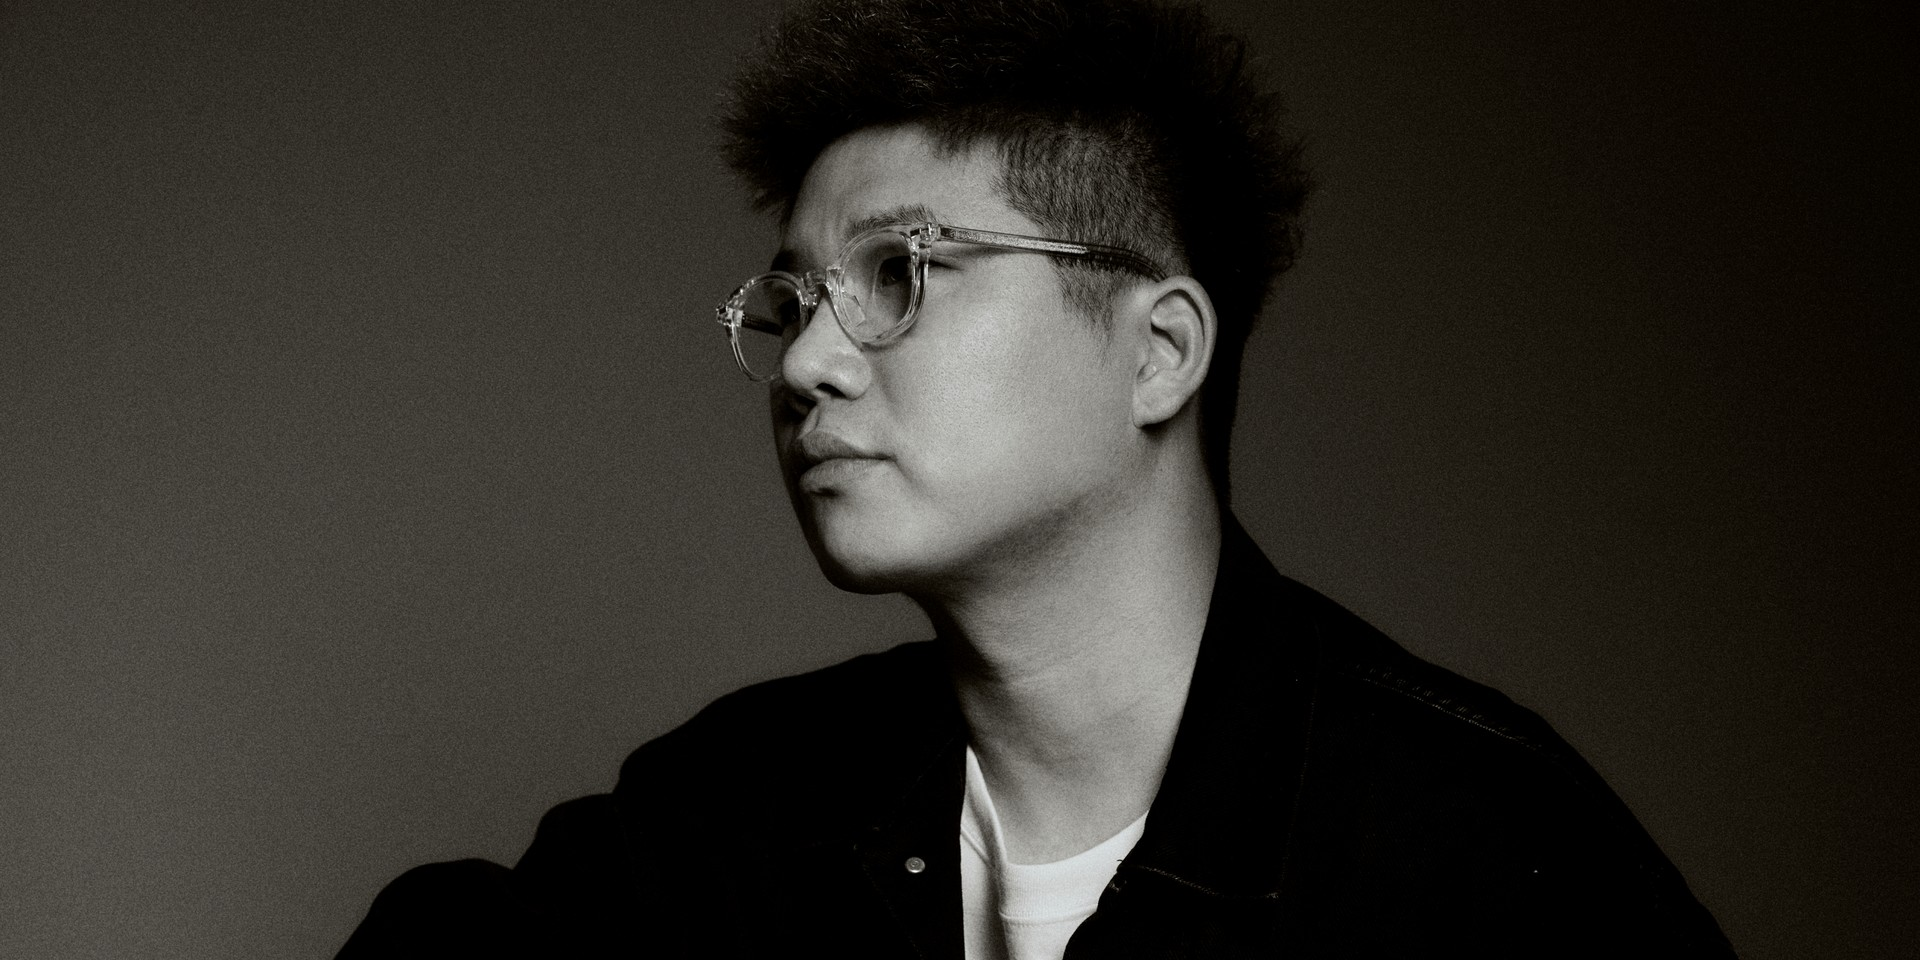 Guitarist and producer Soowan Chung on touring with BTS, working on K-pop tunes and K-drama OSTs, and recording over 6,000 songs